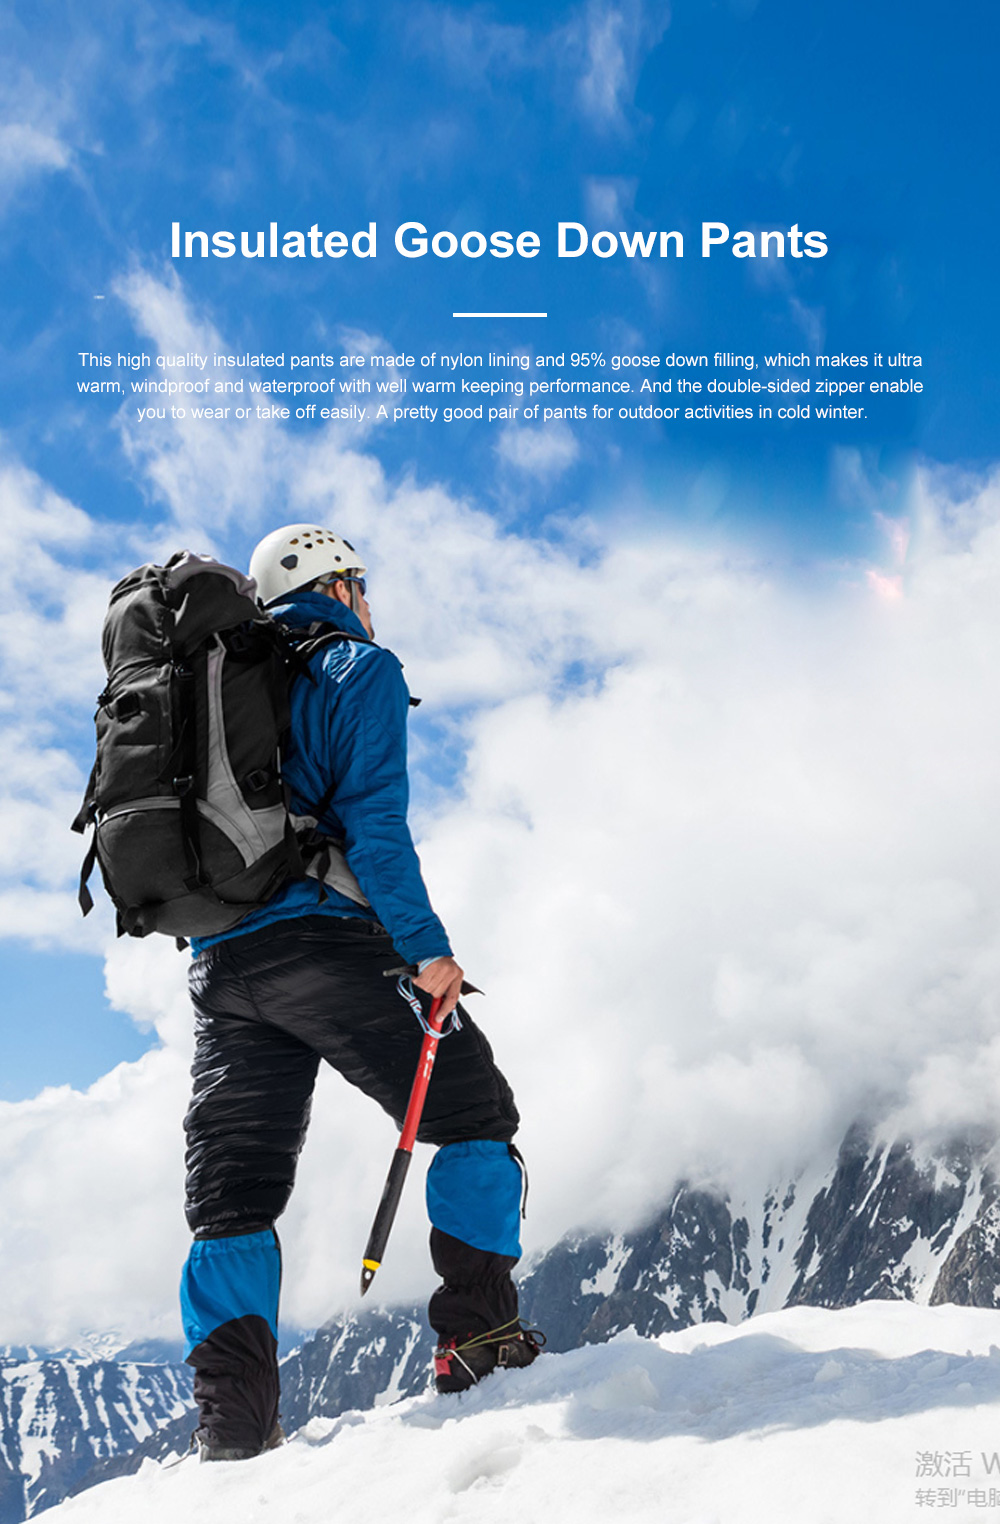 NH 95% Goose Down Pants Windproof and Water-Resistant Insulated Snow Trousers for Winter Outdoor Sport 0